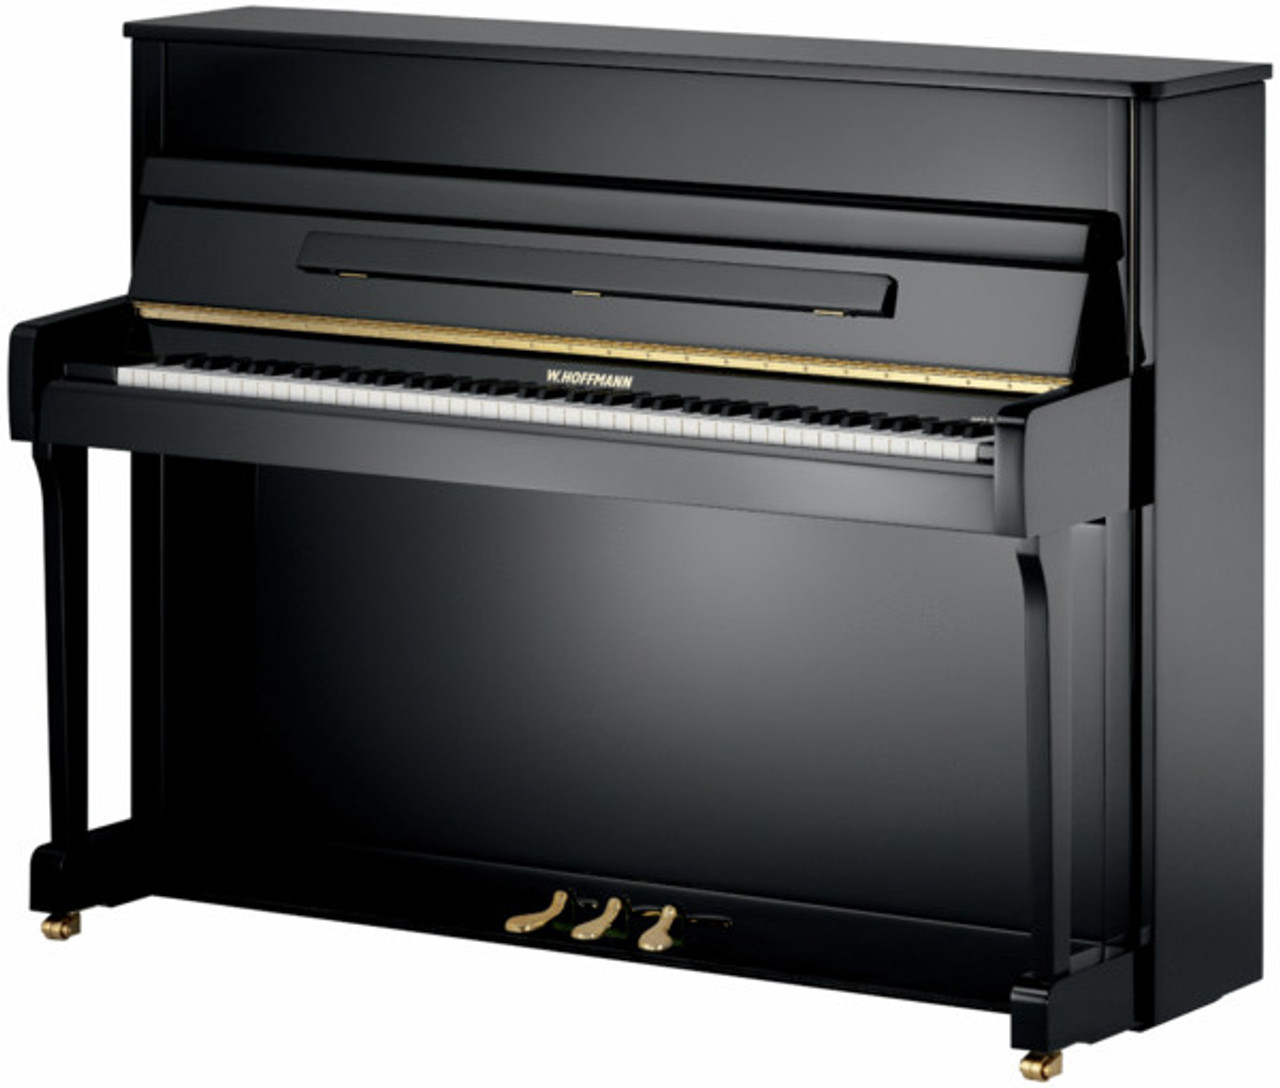 W.Hoffmann Vision V112 Piano, Also available in Mahogany, see the video!